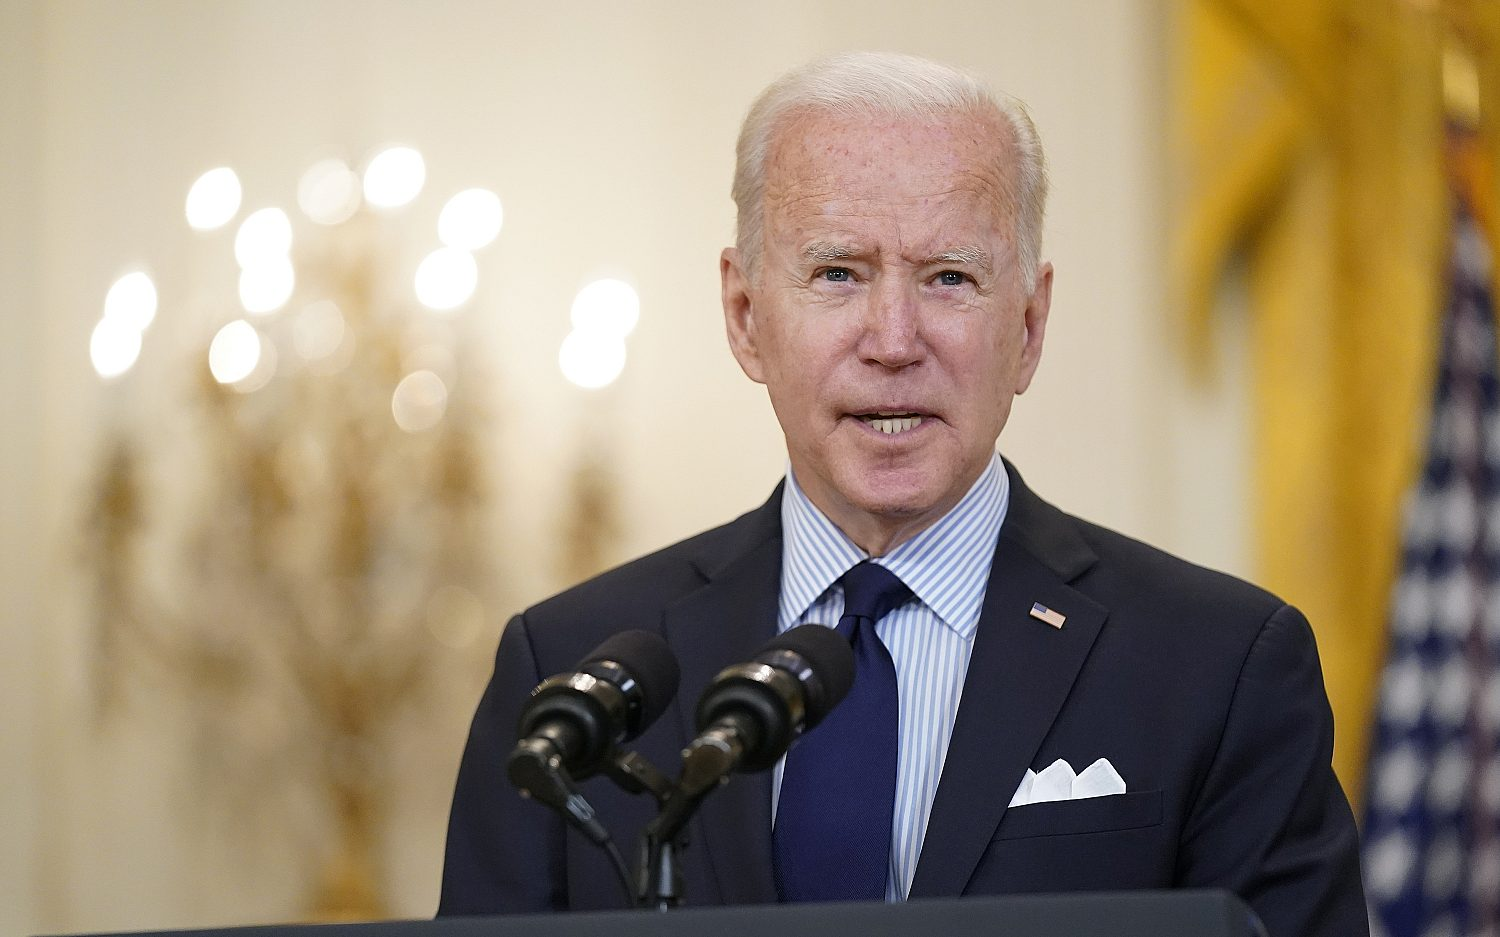 Biden administration targets healthcare conscience protections